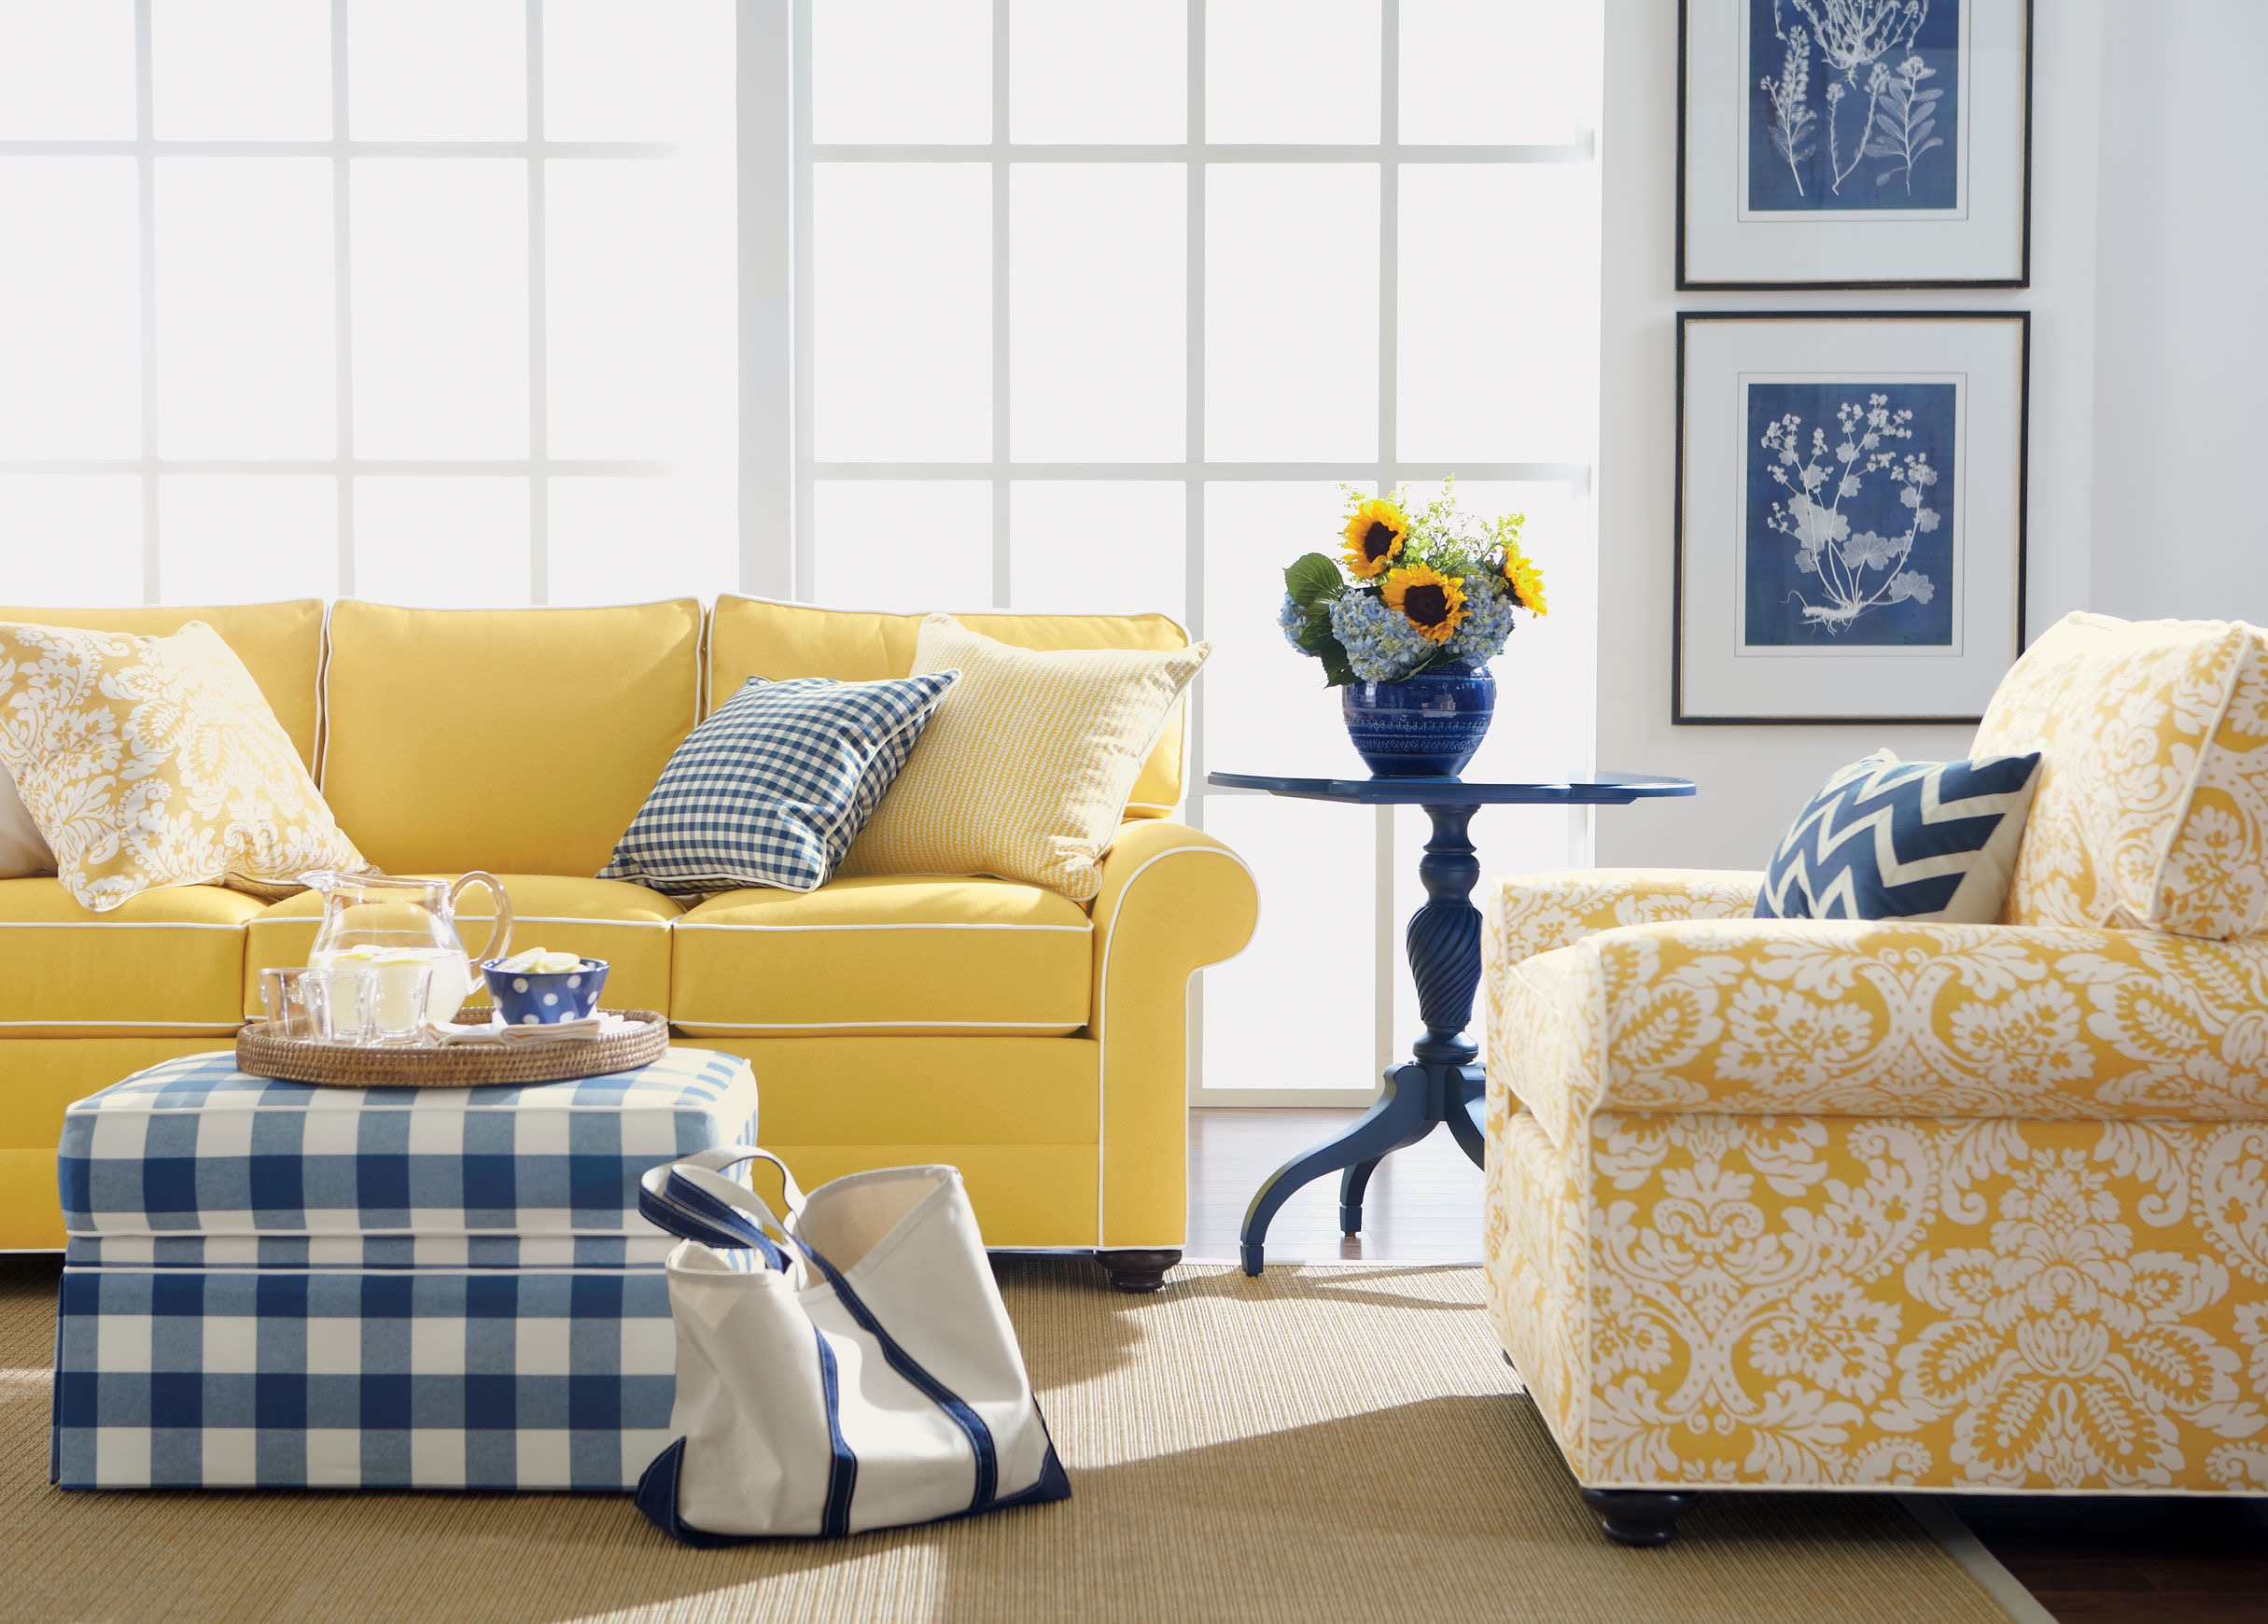 Ethan Allen Slipcovers | Pottery Barn Charleston Sofa | Pottery Barn Sleeper Sofa